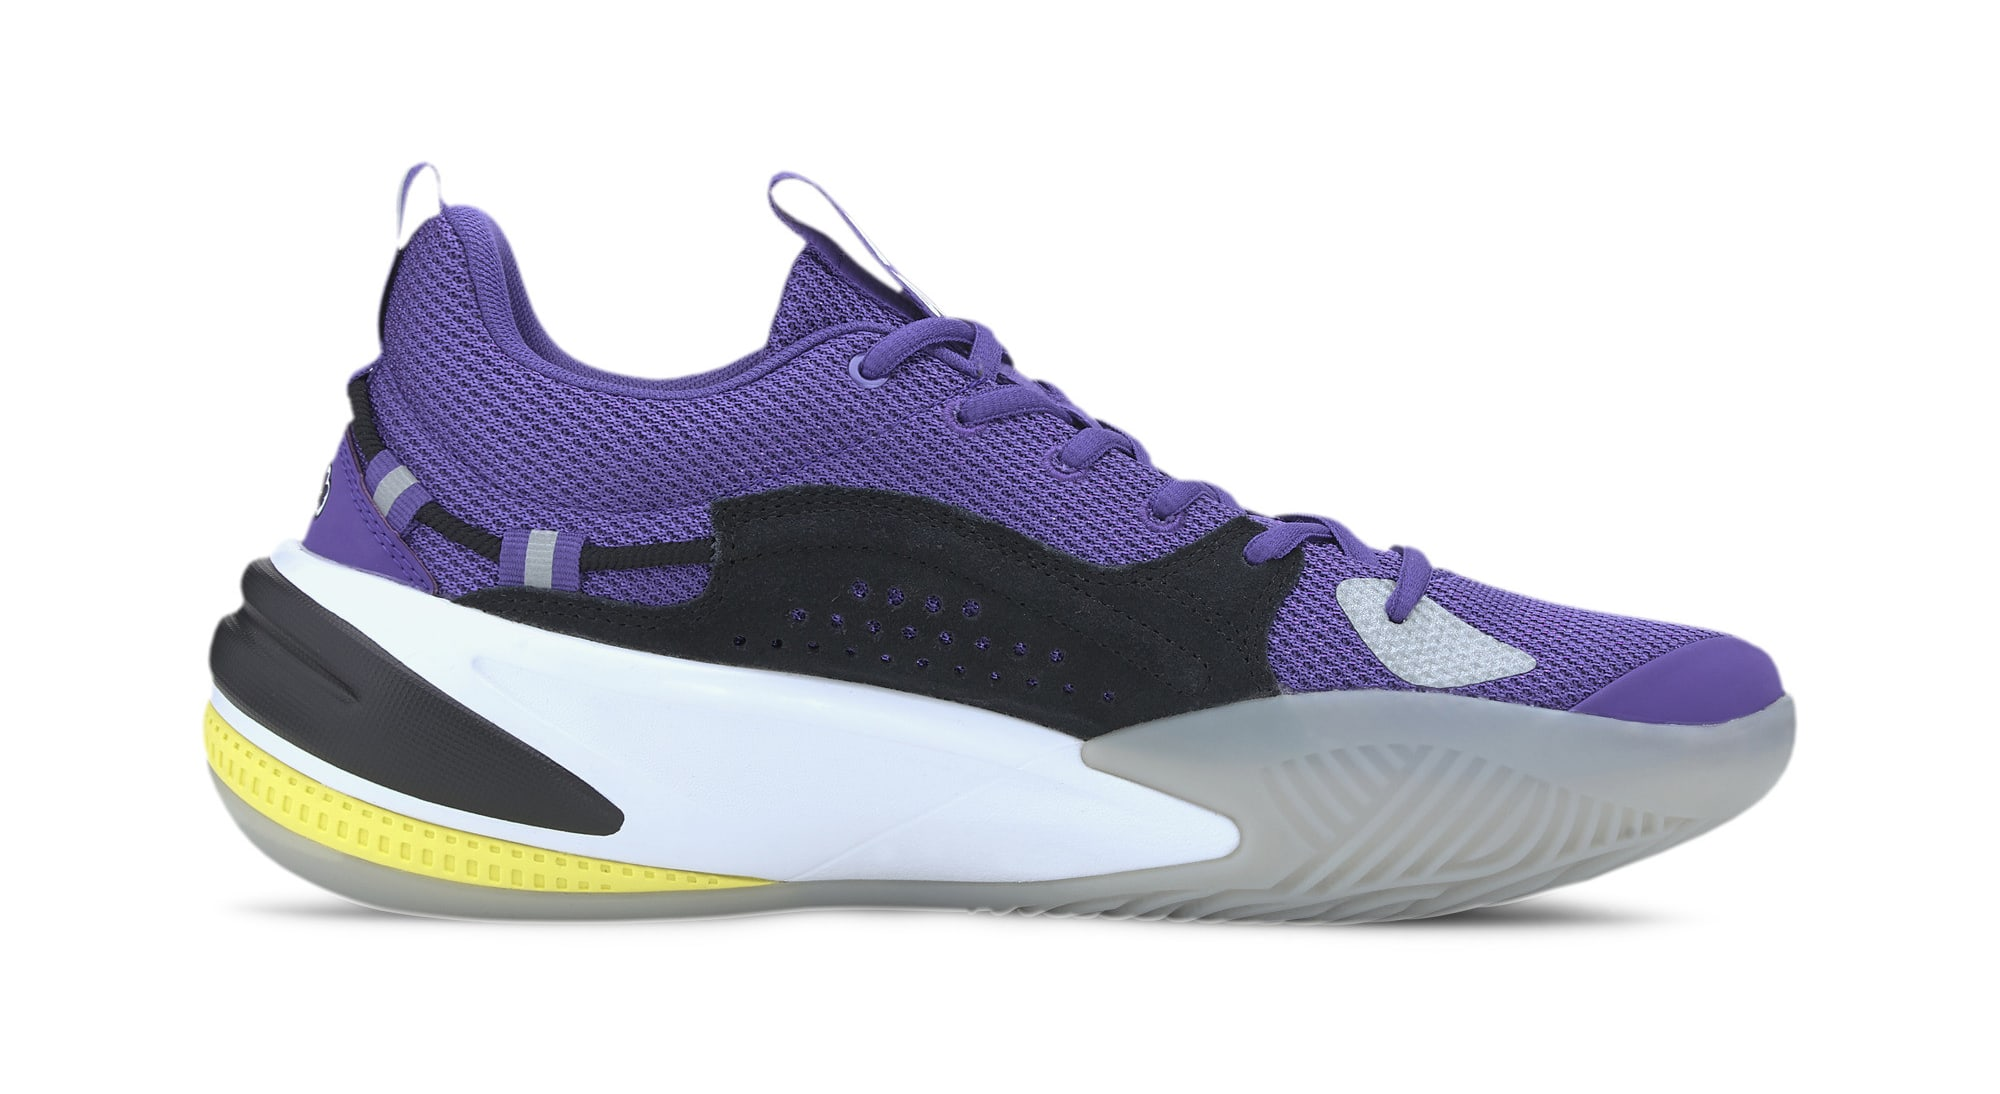 J. Cole x Puma RS-Dreamer 'Purple Heart' Medial